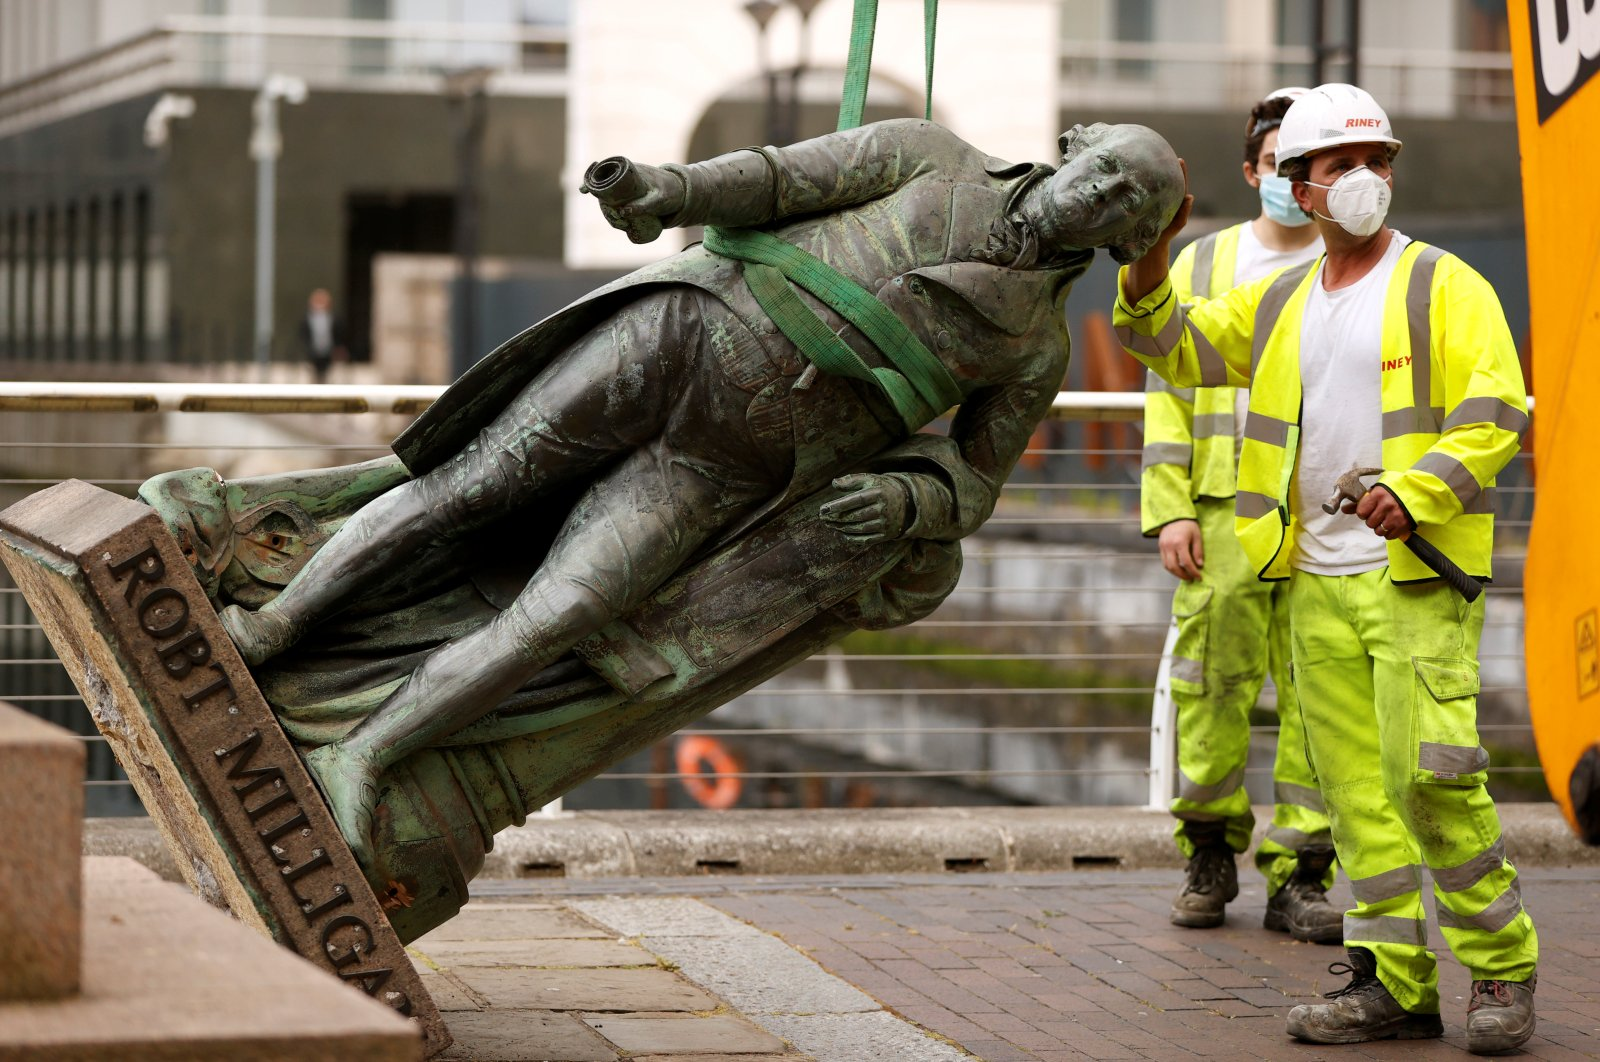 A statue of Robert Milligan is removed by workers outside the Museum of London Docklands near Canary Wharf, following the death of George Floyd, London, June 9, 2020. (Reuters Photo)